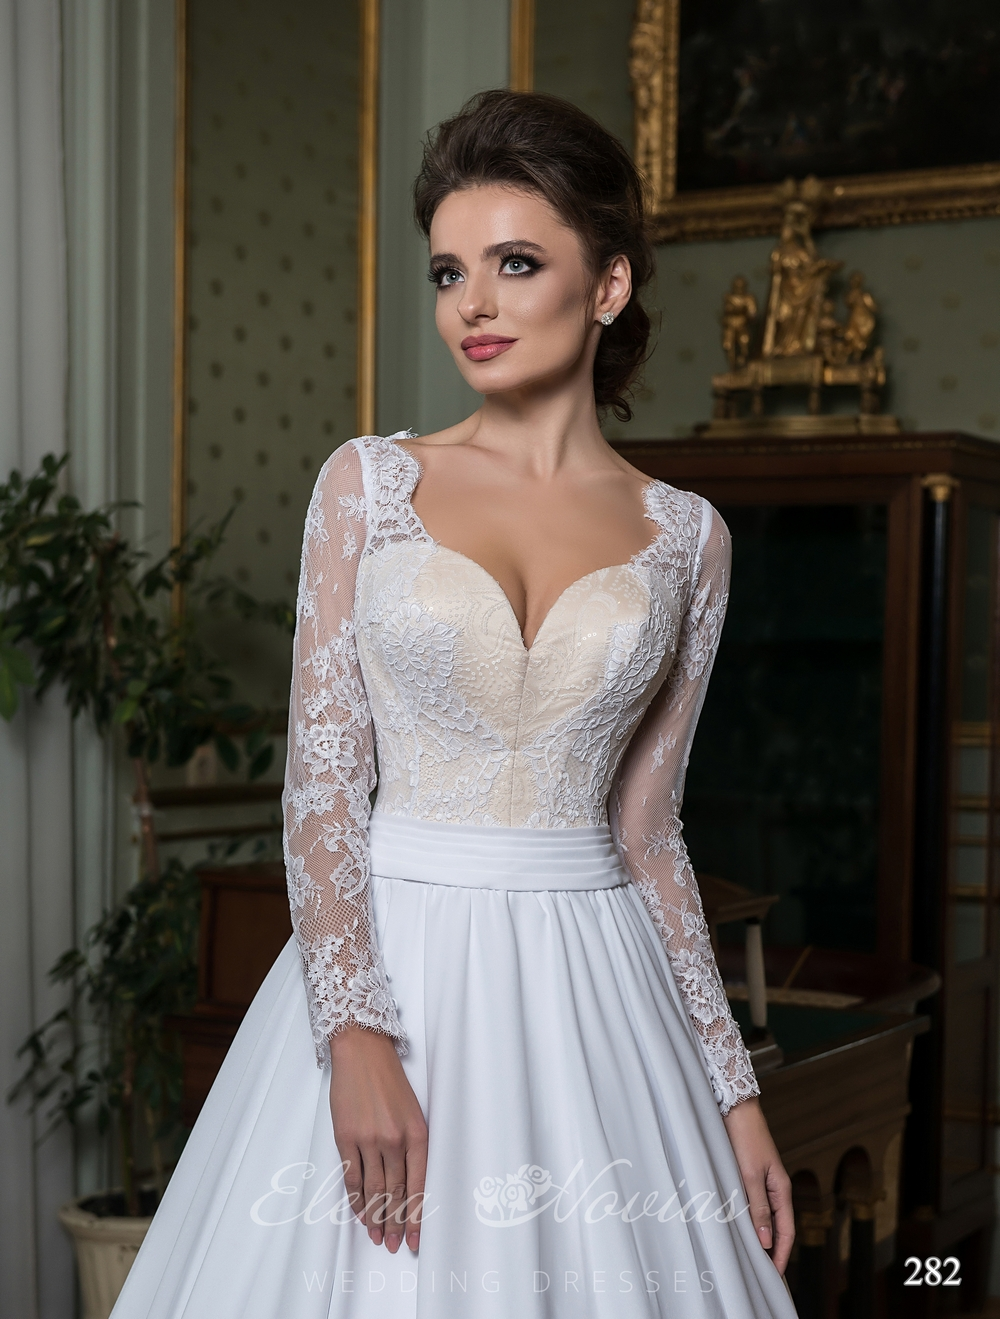 Luxurious wedding dress with a long train